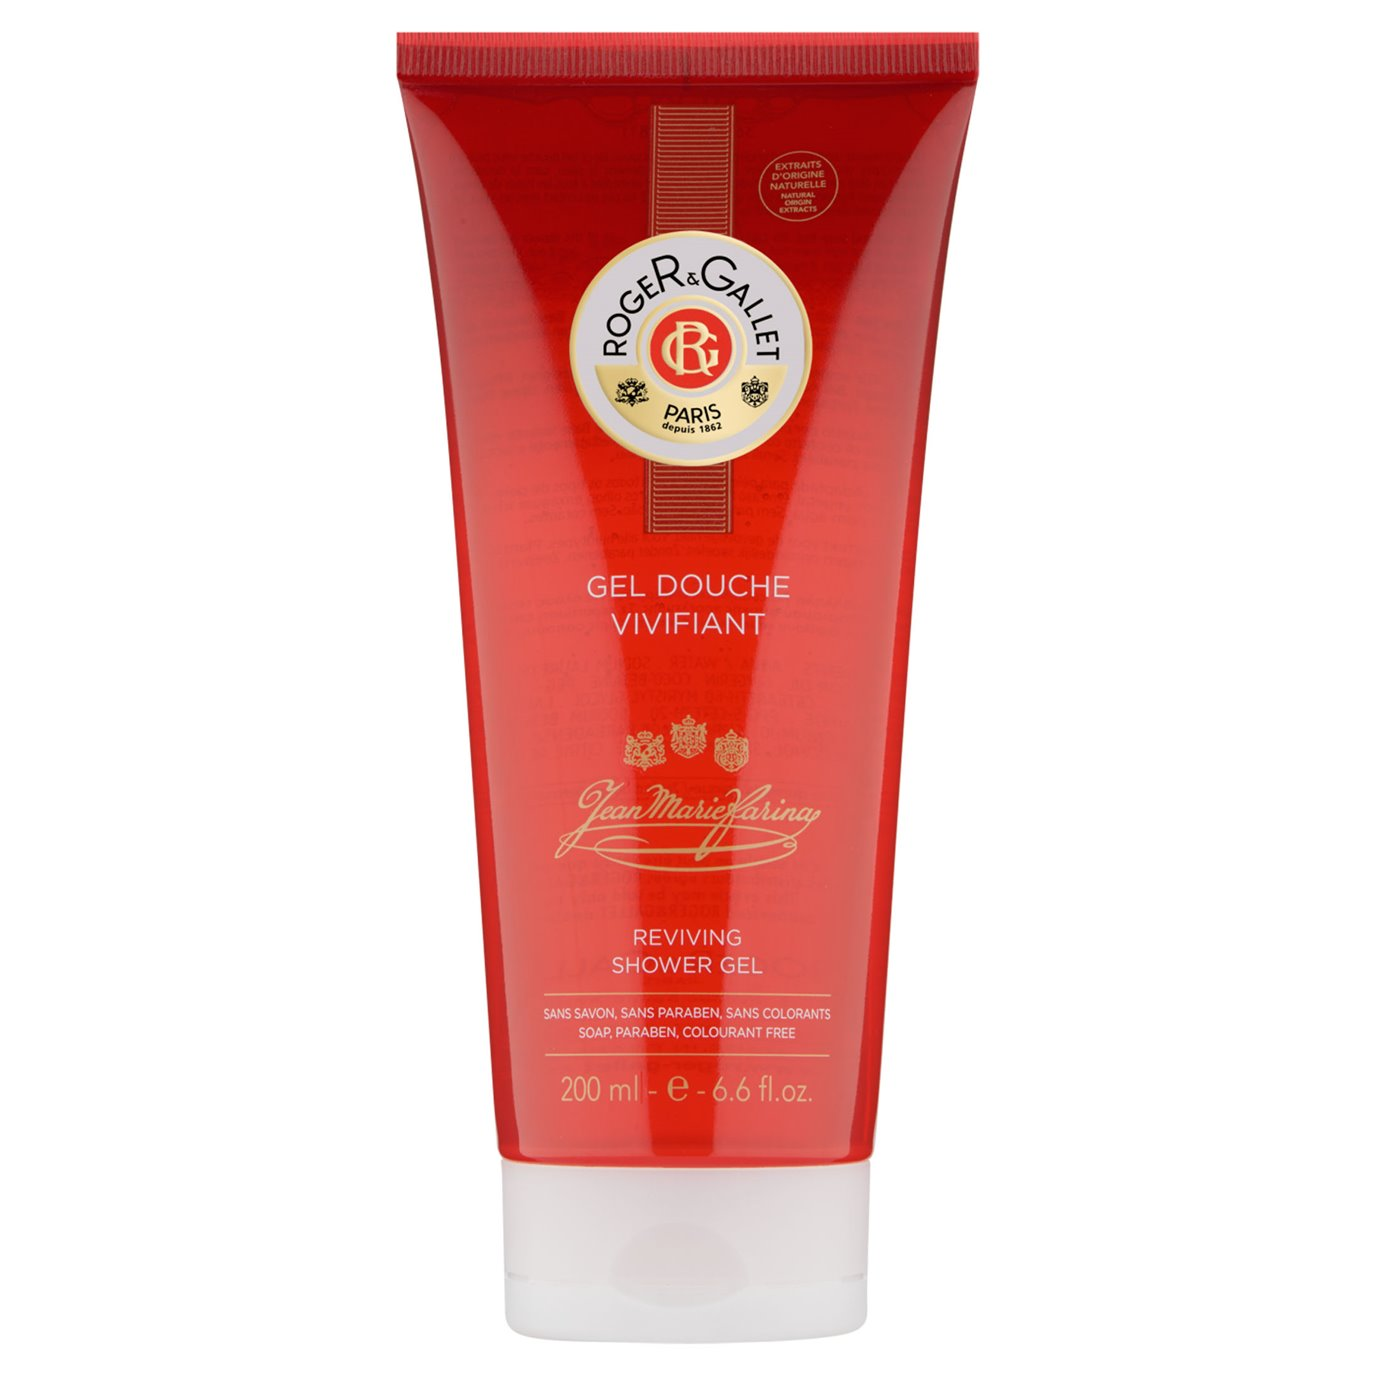 Jean Marie Farina Extra Vieille Bath & Shower Gel Tube by Roger & Gallet